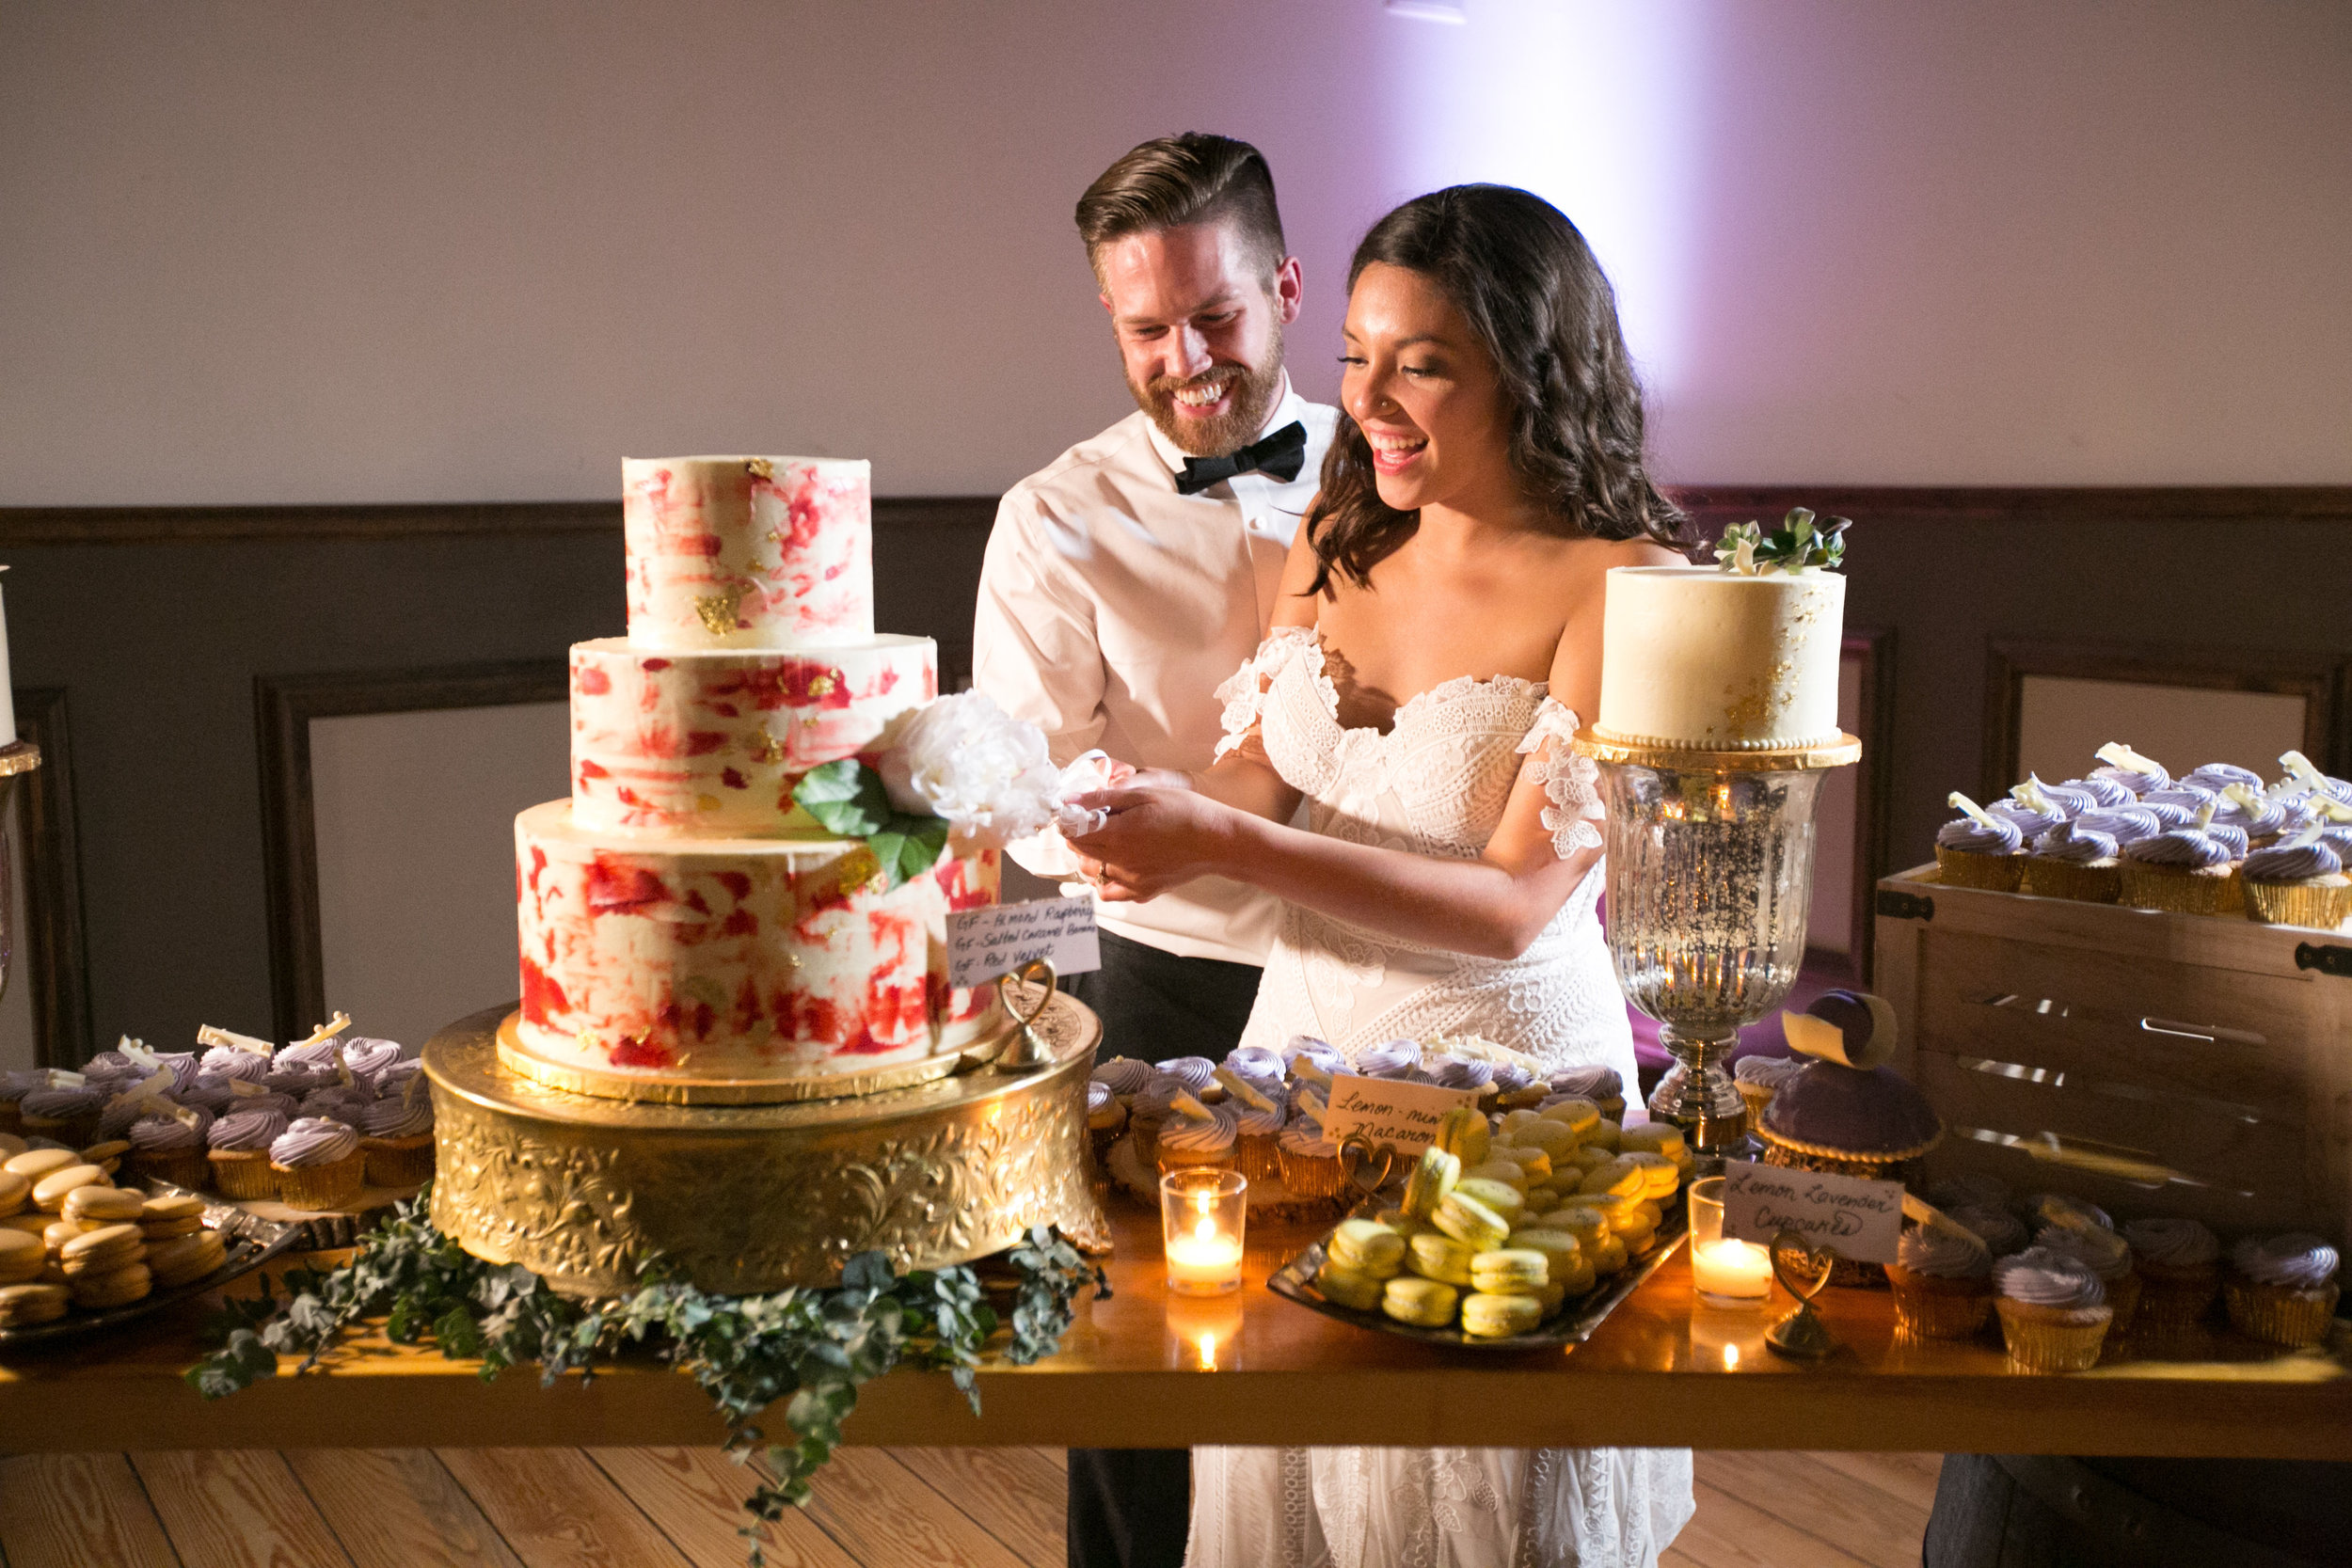 Hello, dessert bar!! Guests love options. By offering several choices, you're more likely to hit every guest's sweet tooth.